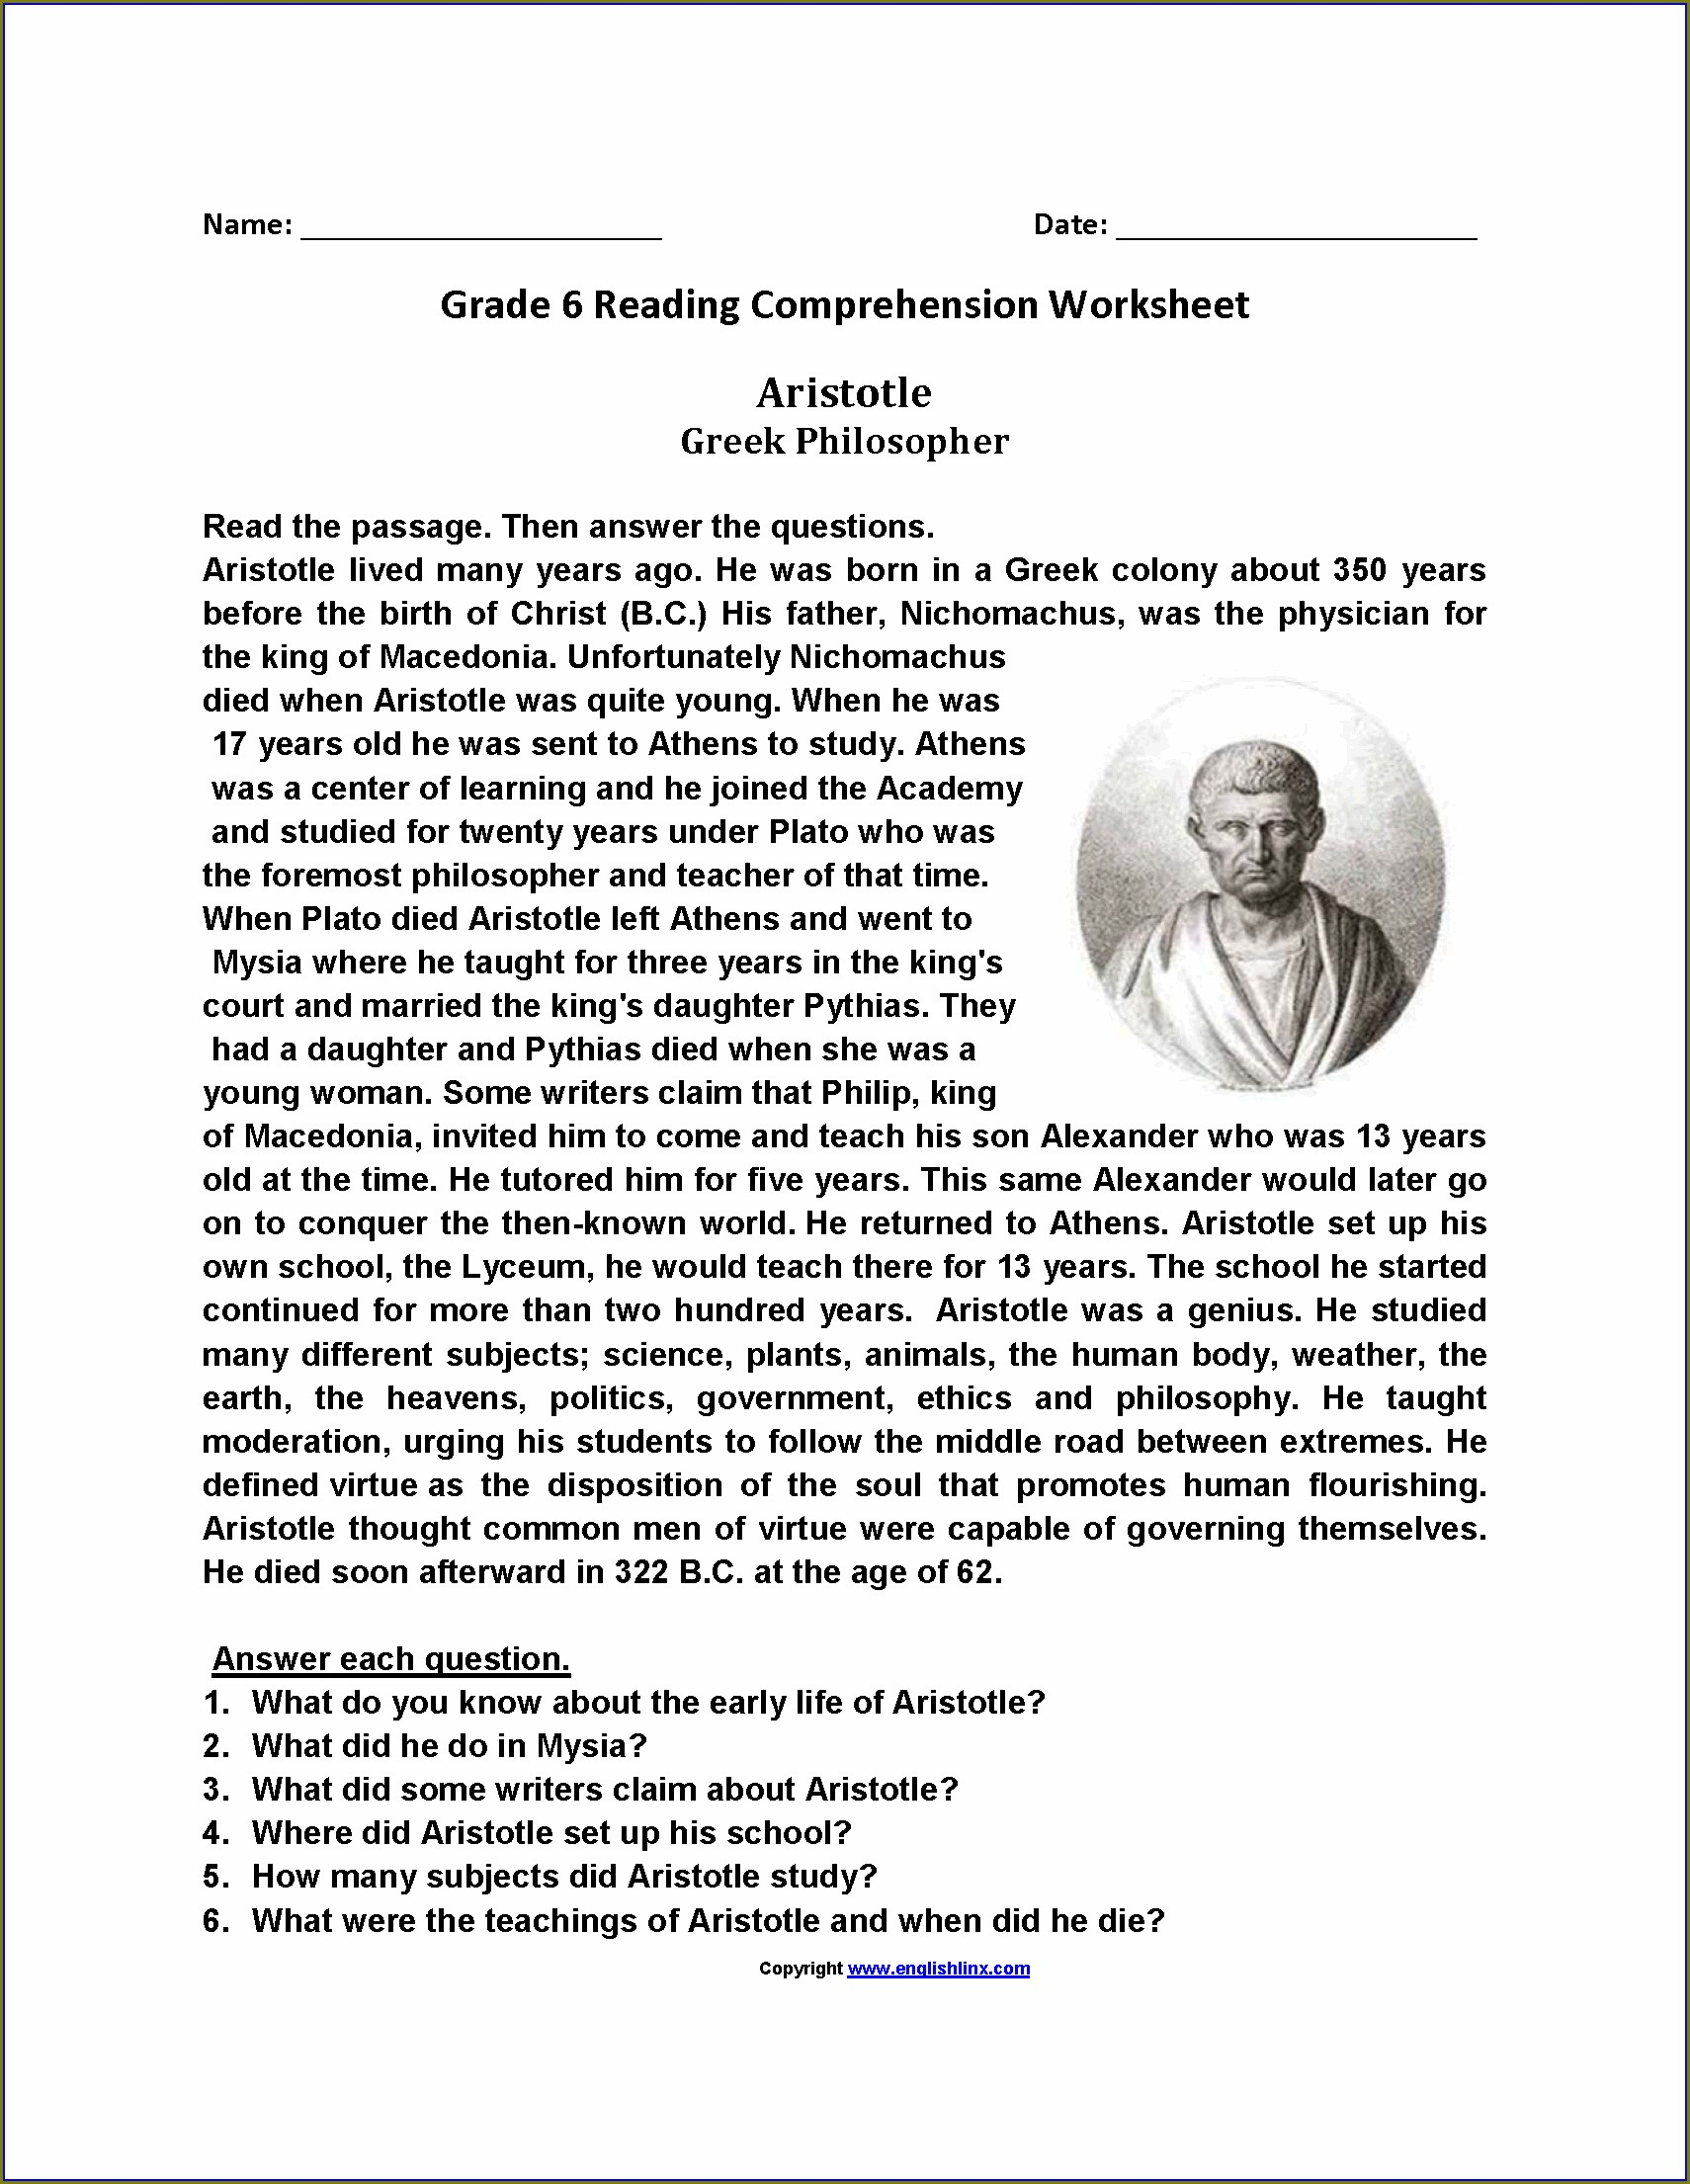 Reading Comprehension Math Free Printable Worksheets For 6th Grade